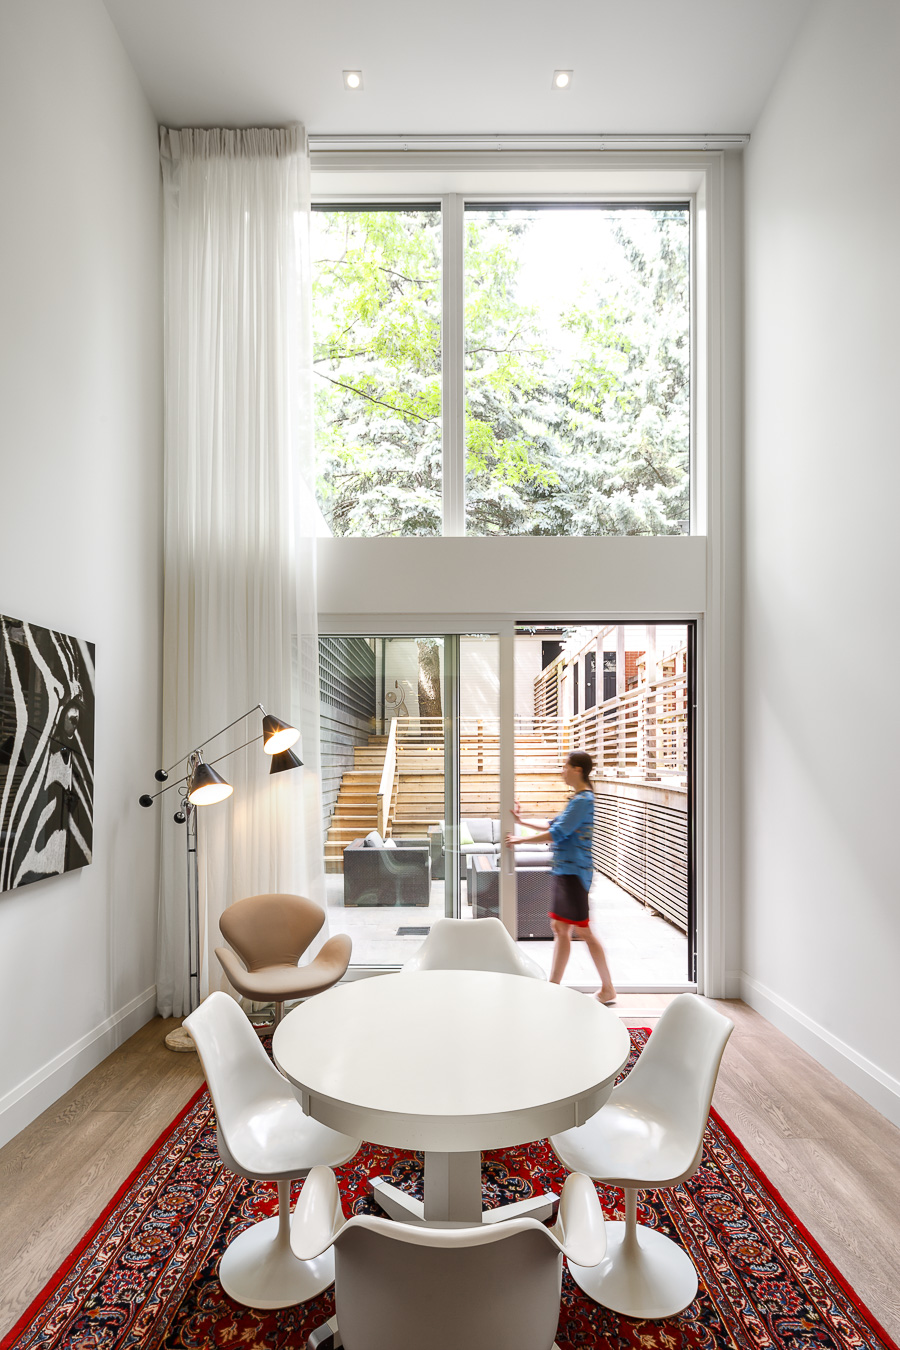 Batay-Csorba_Yorkville_Residence_doublespace_architecture_photography-84